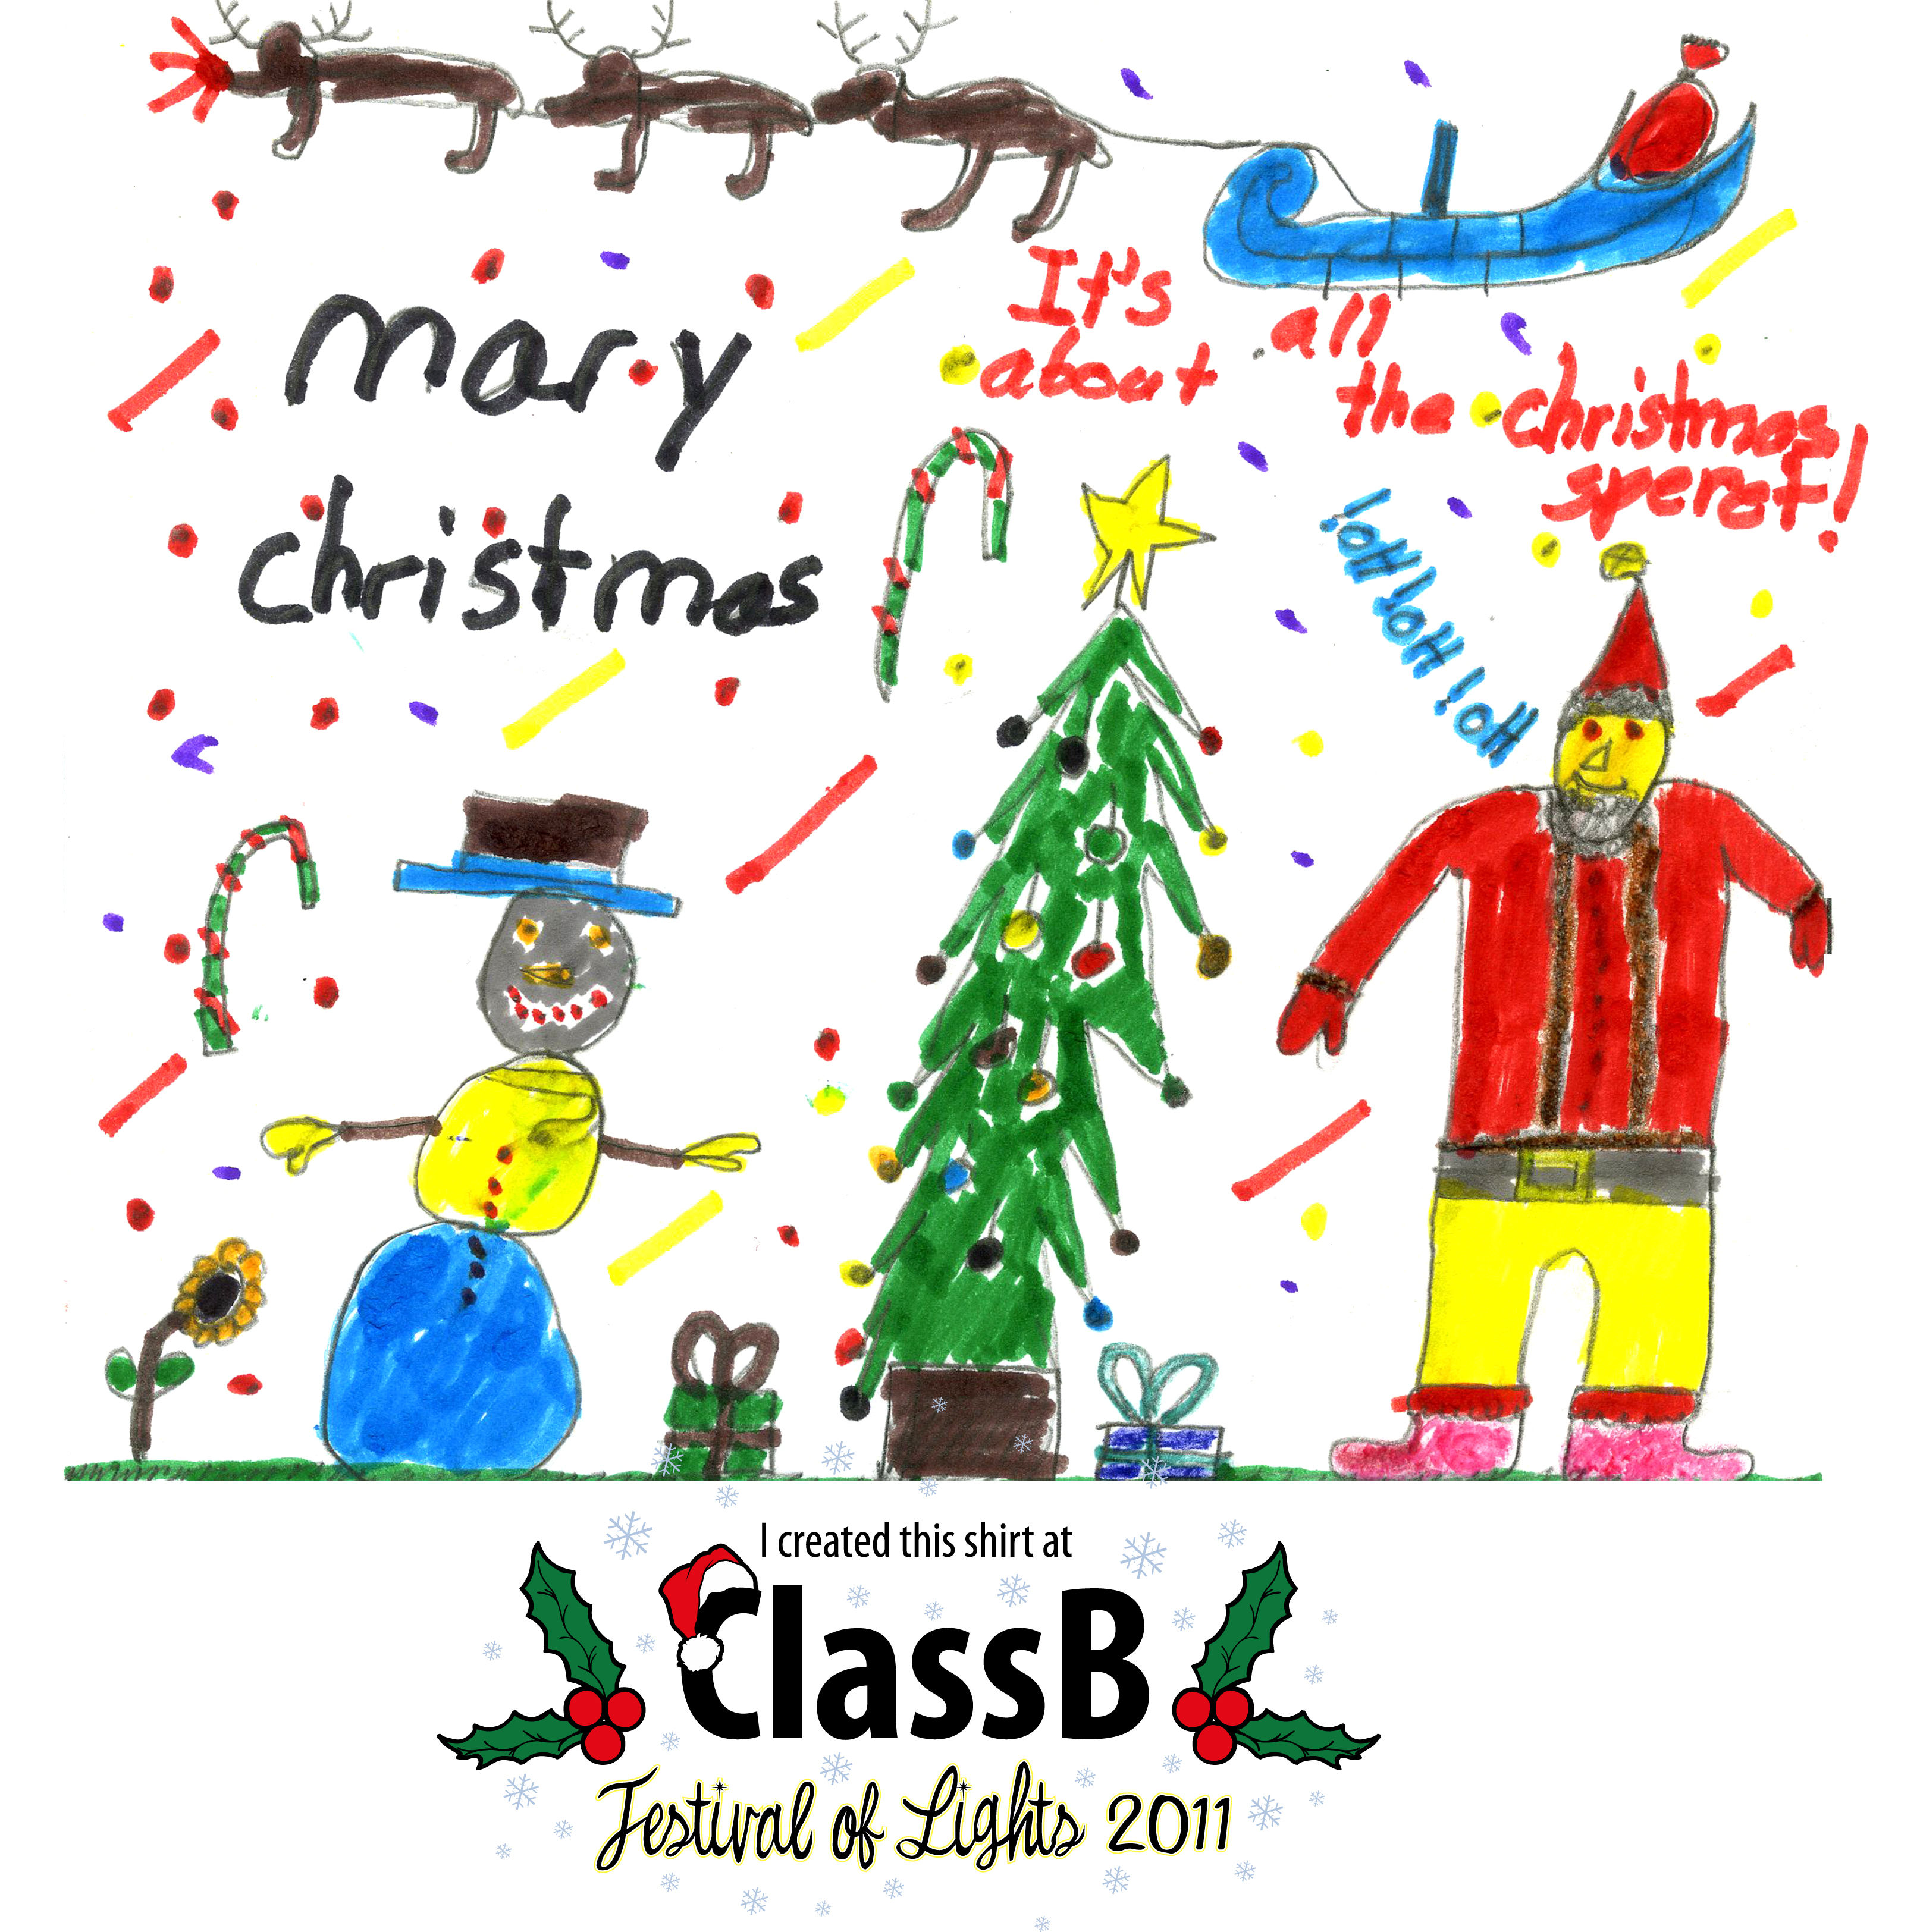 Classb 174 custom t shirts 187 blog archive holiday drawing contest